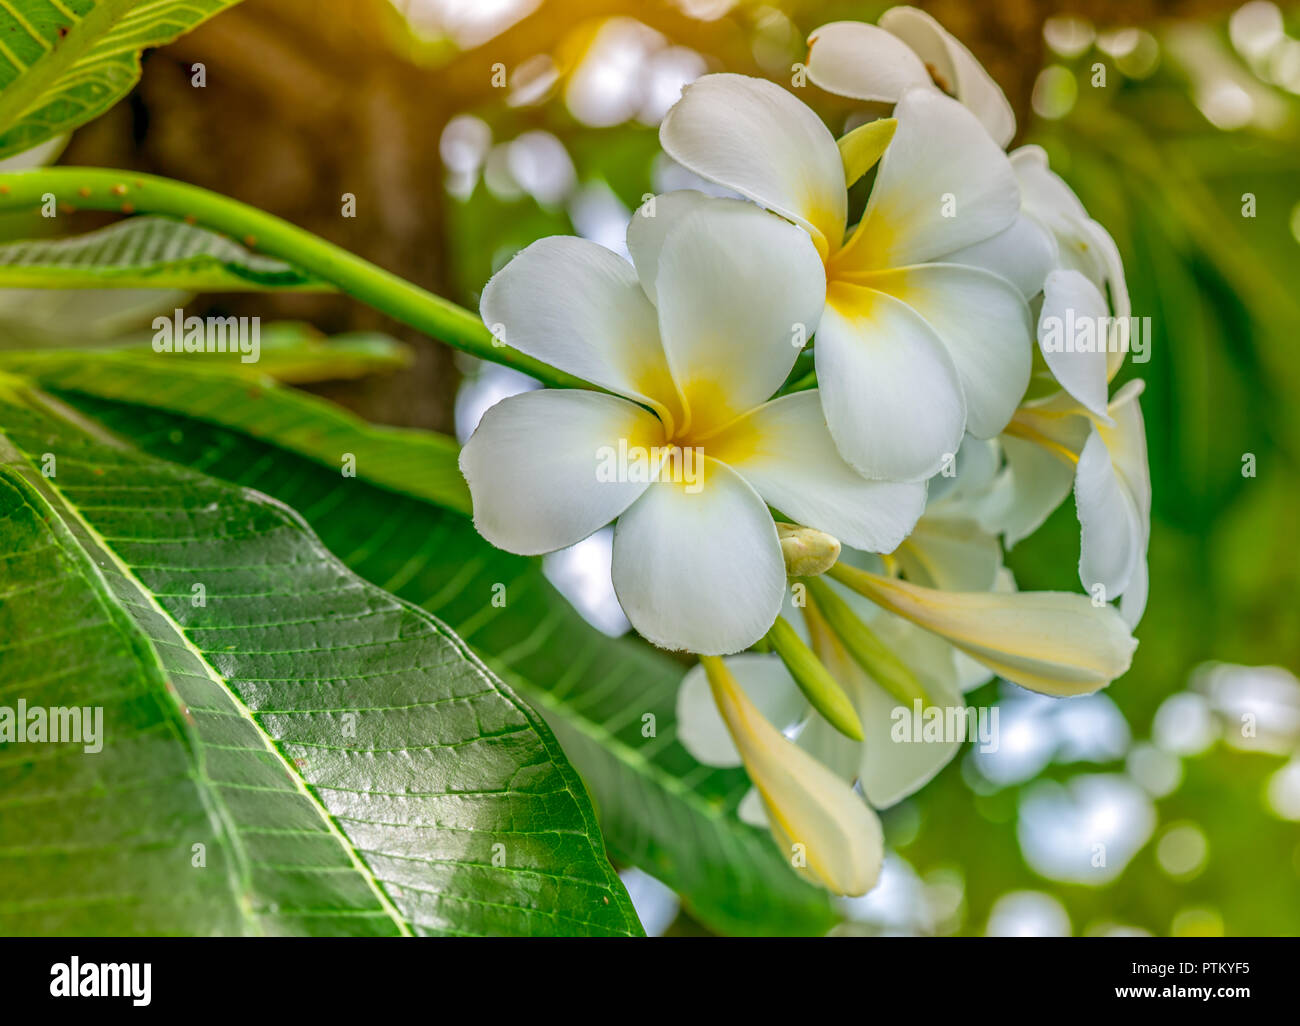 Frangipani flower (Plumeria alba) with green leaves on